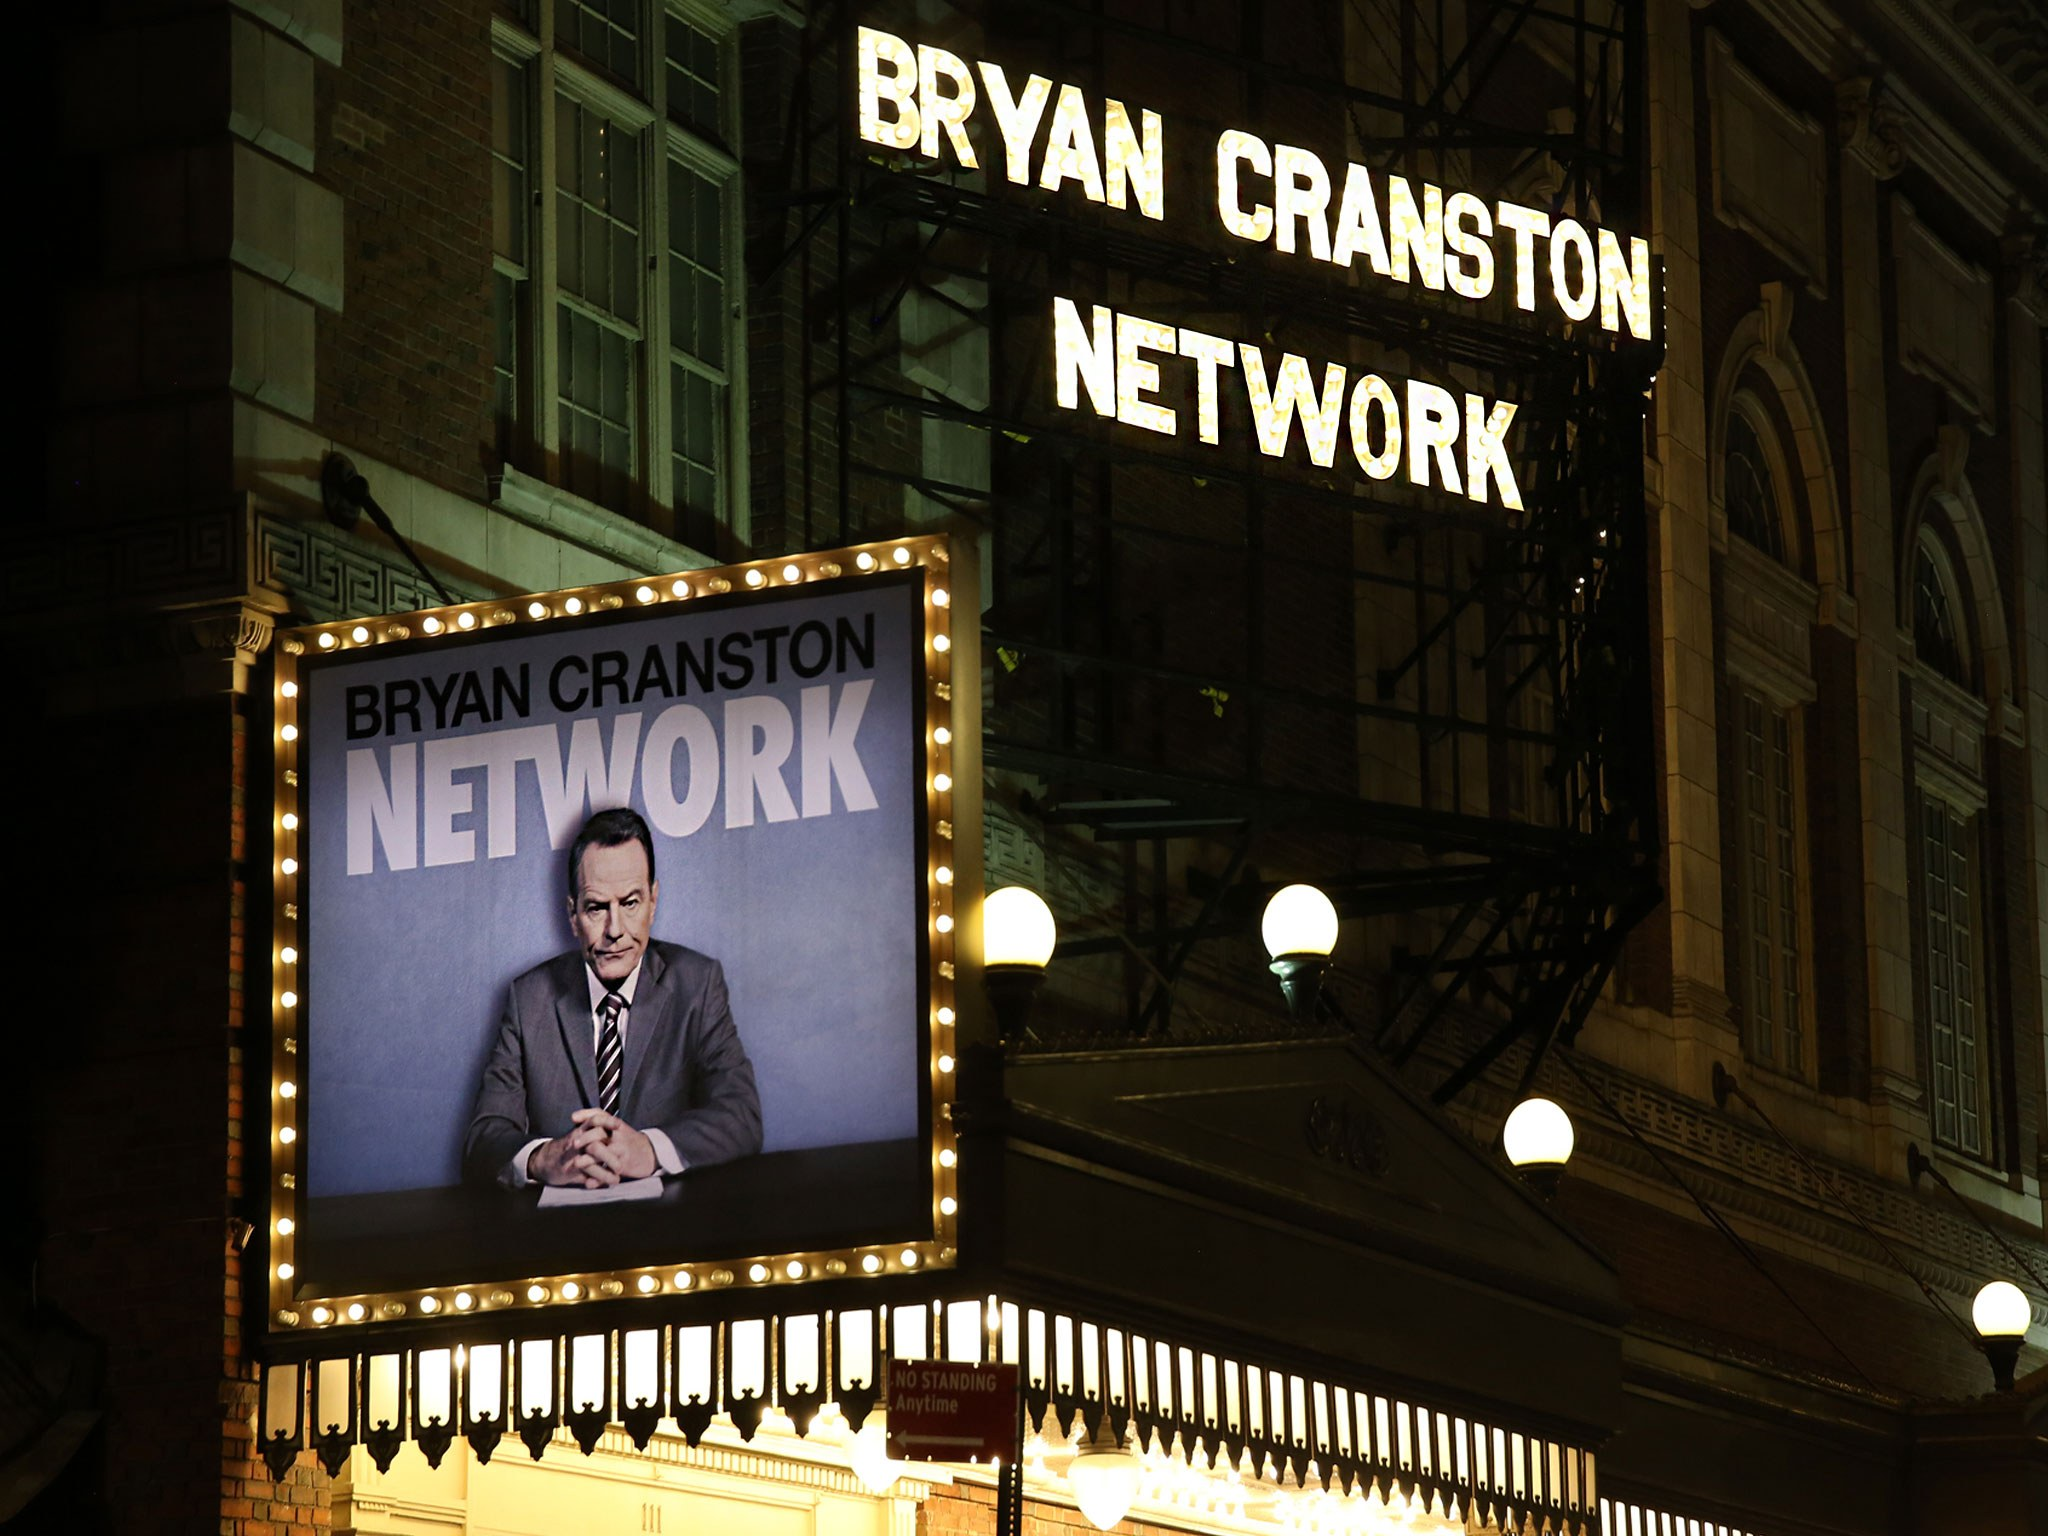 The Network at the Belasco Theatre